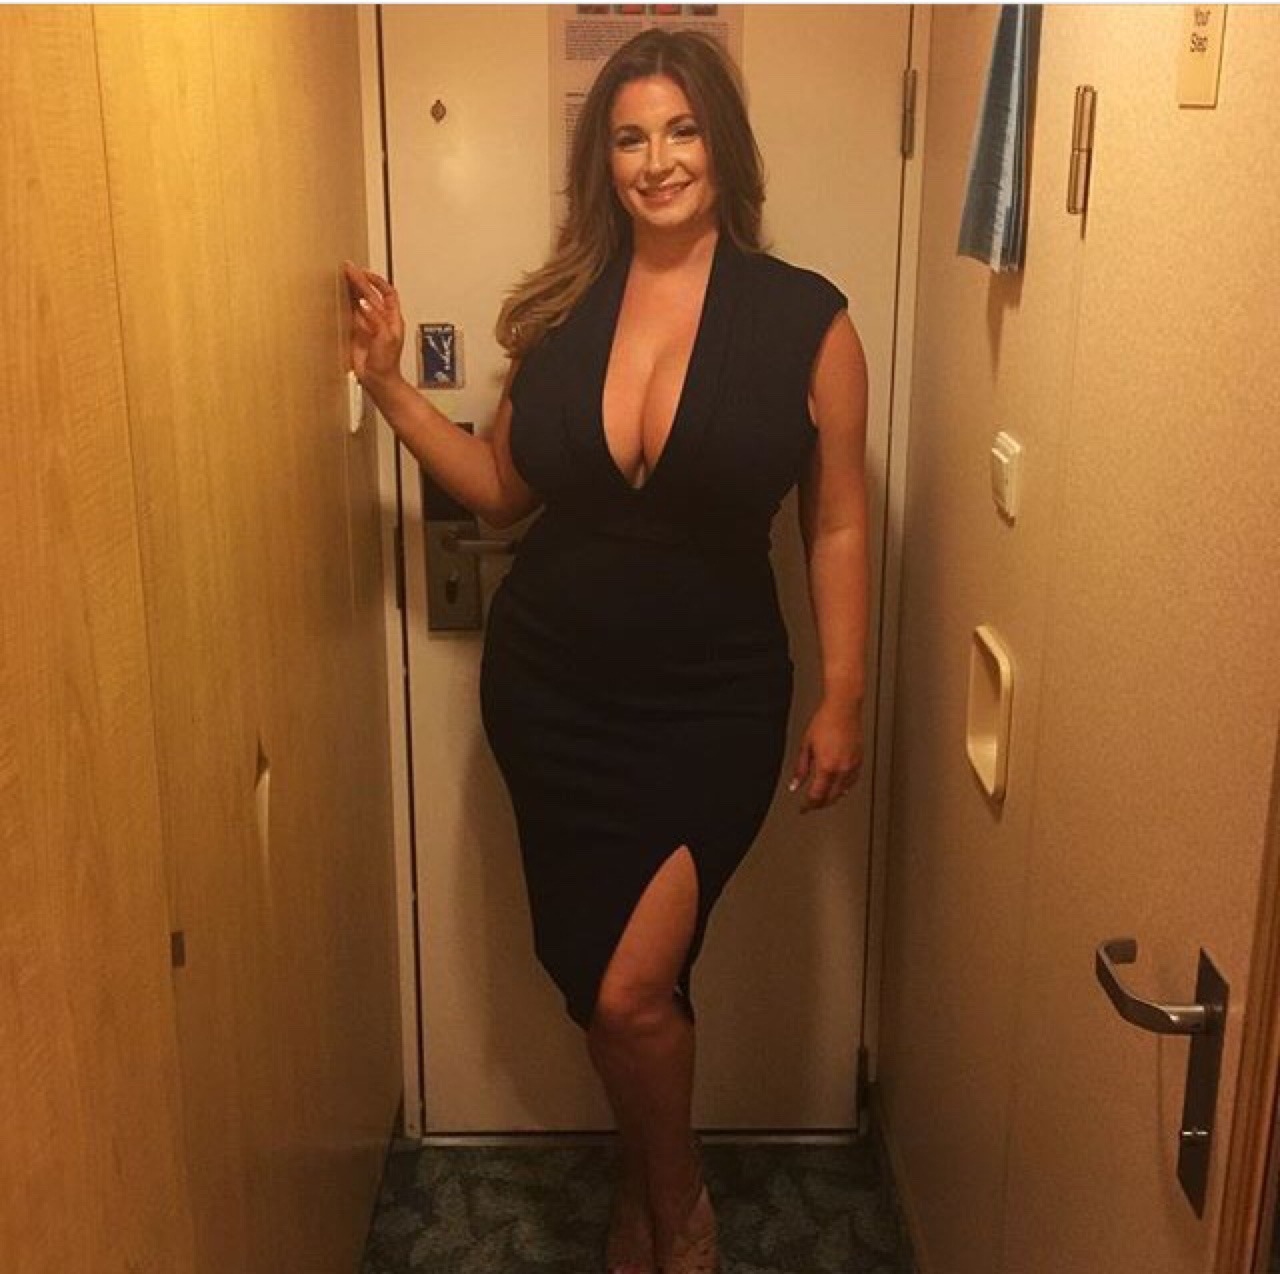 Solo Tight Dress Masturbation